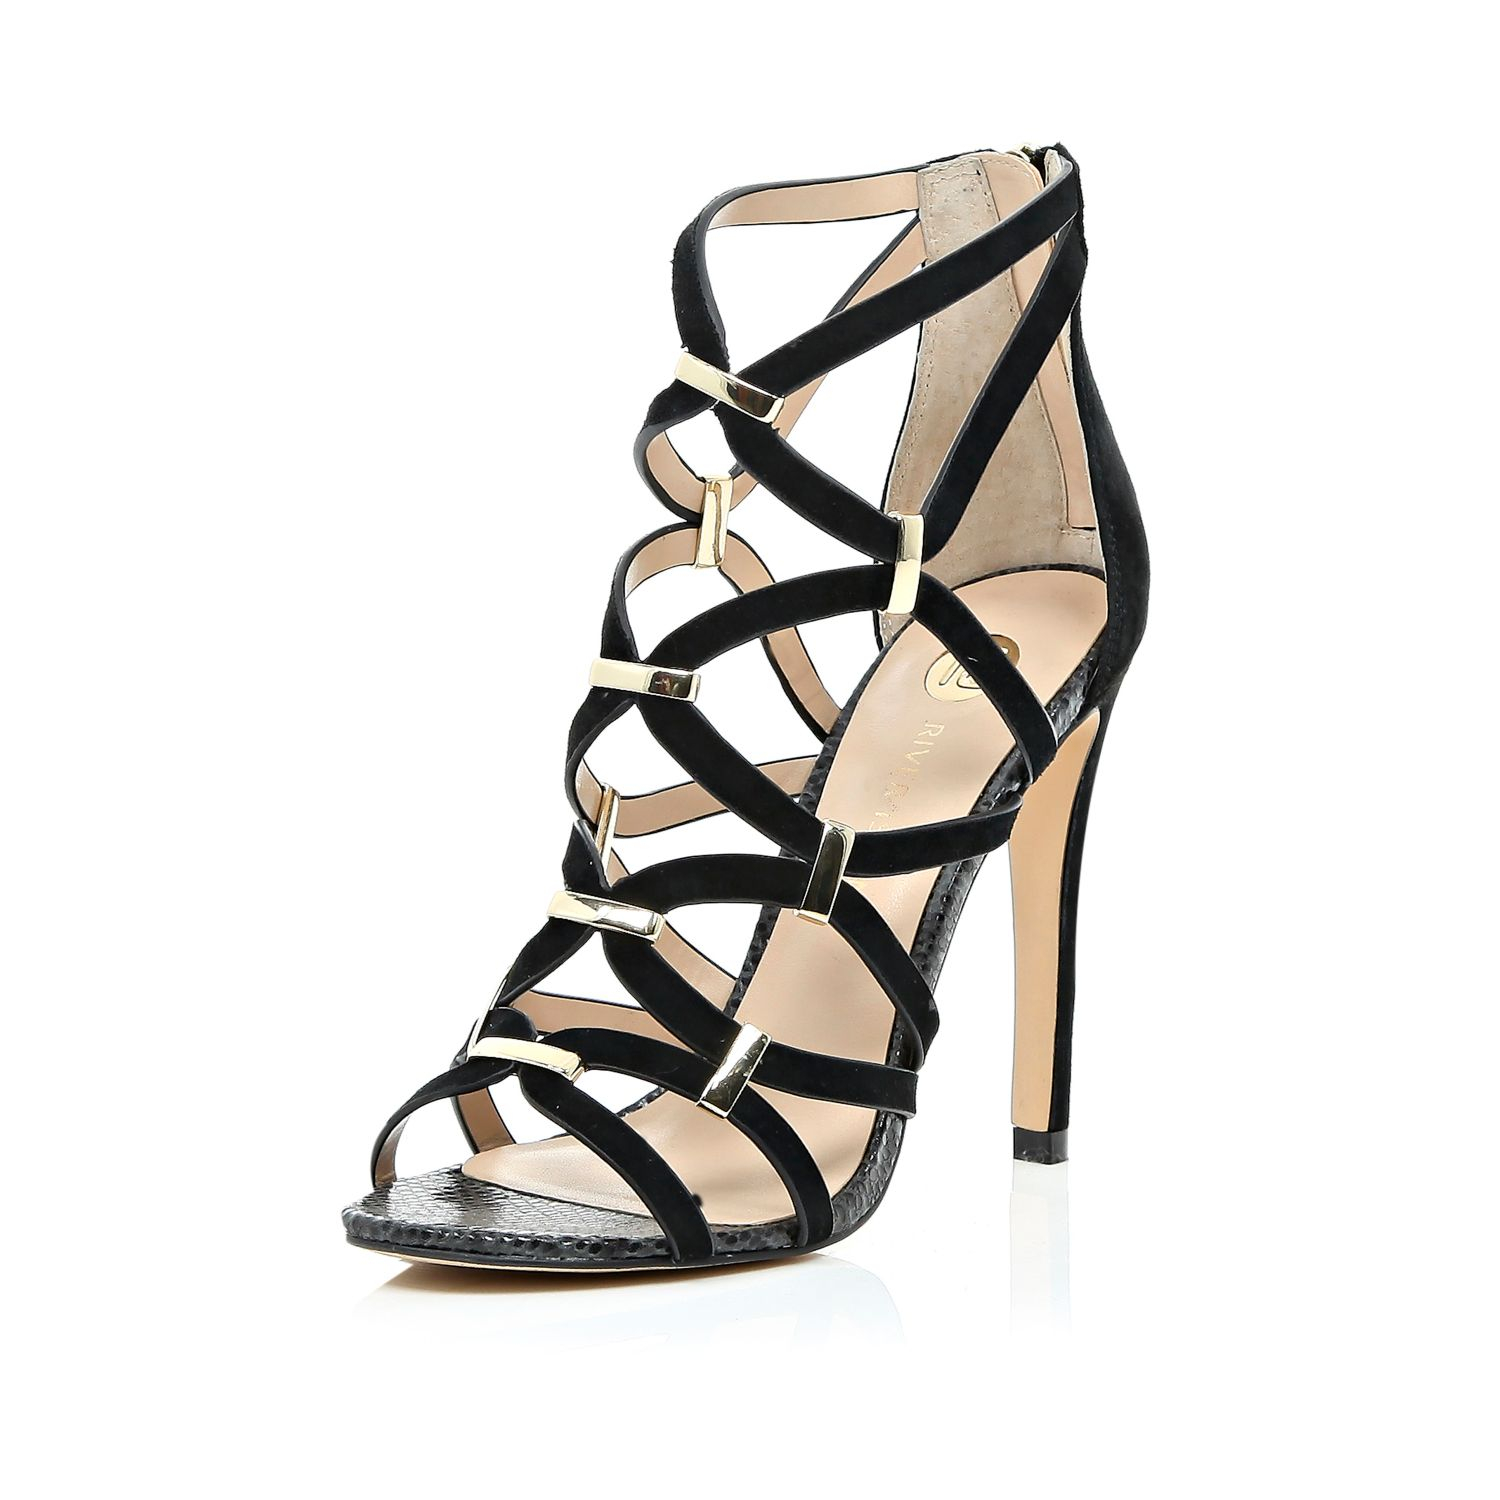 River Island heeled sandals with scallop detail in black discount best place sale Cheapest tYgDcf